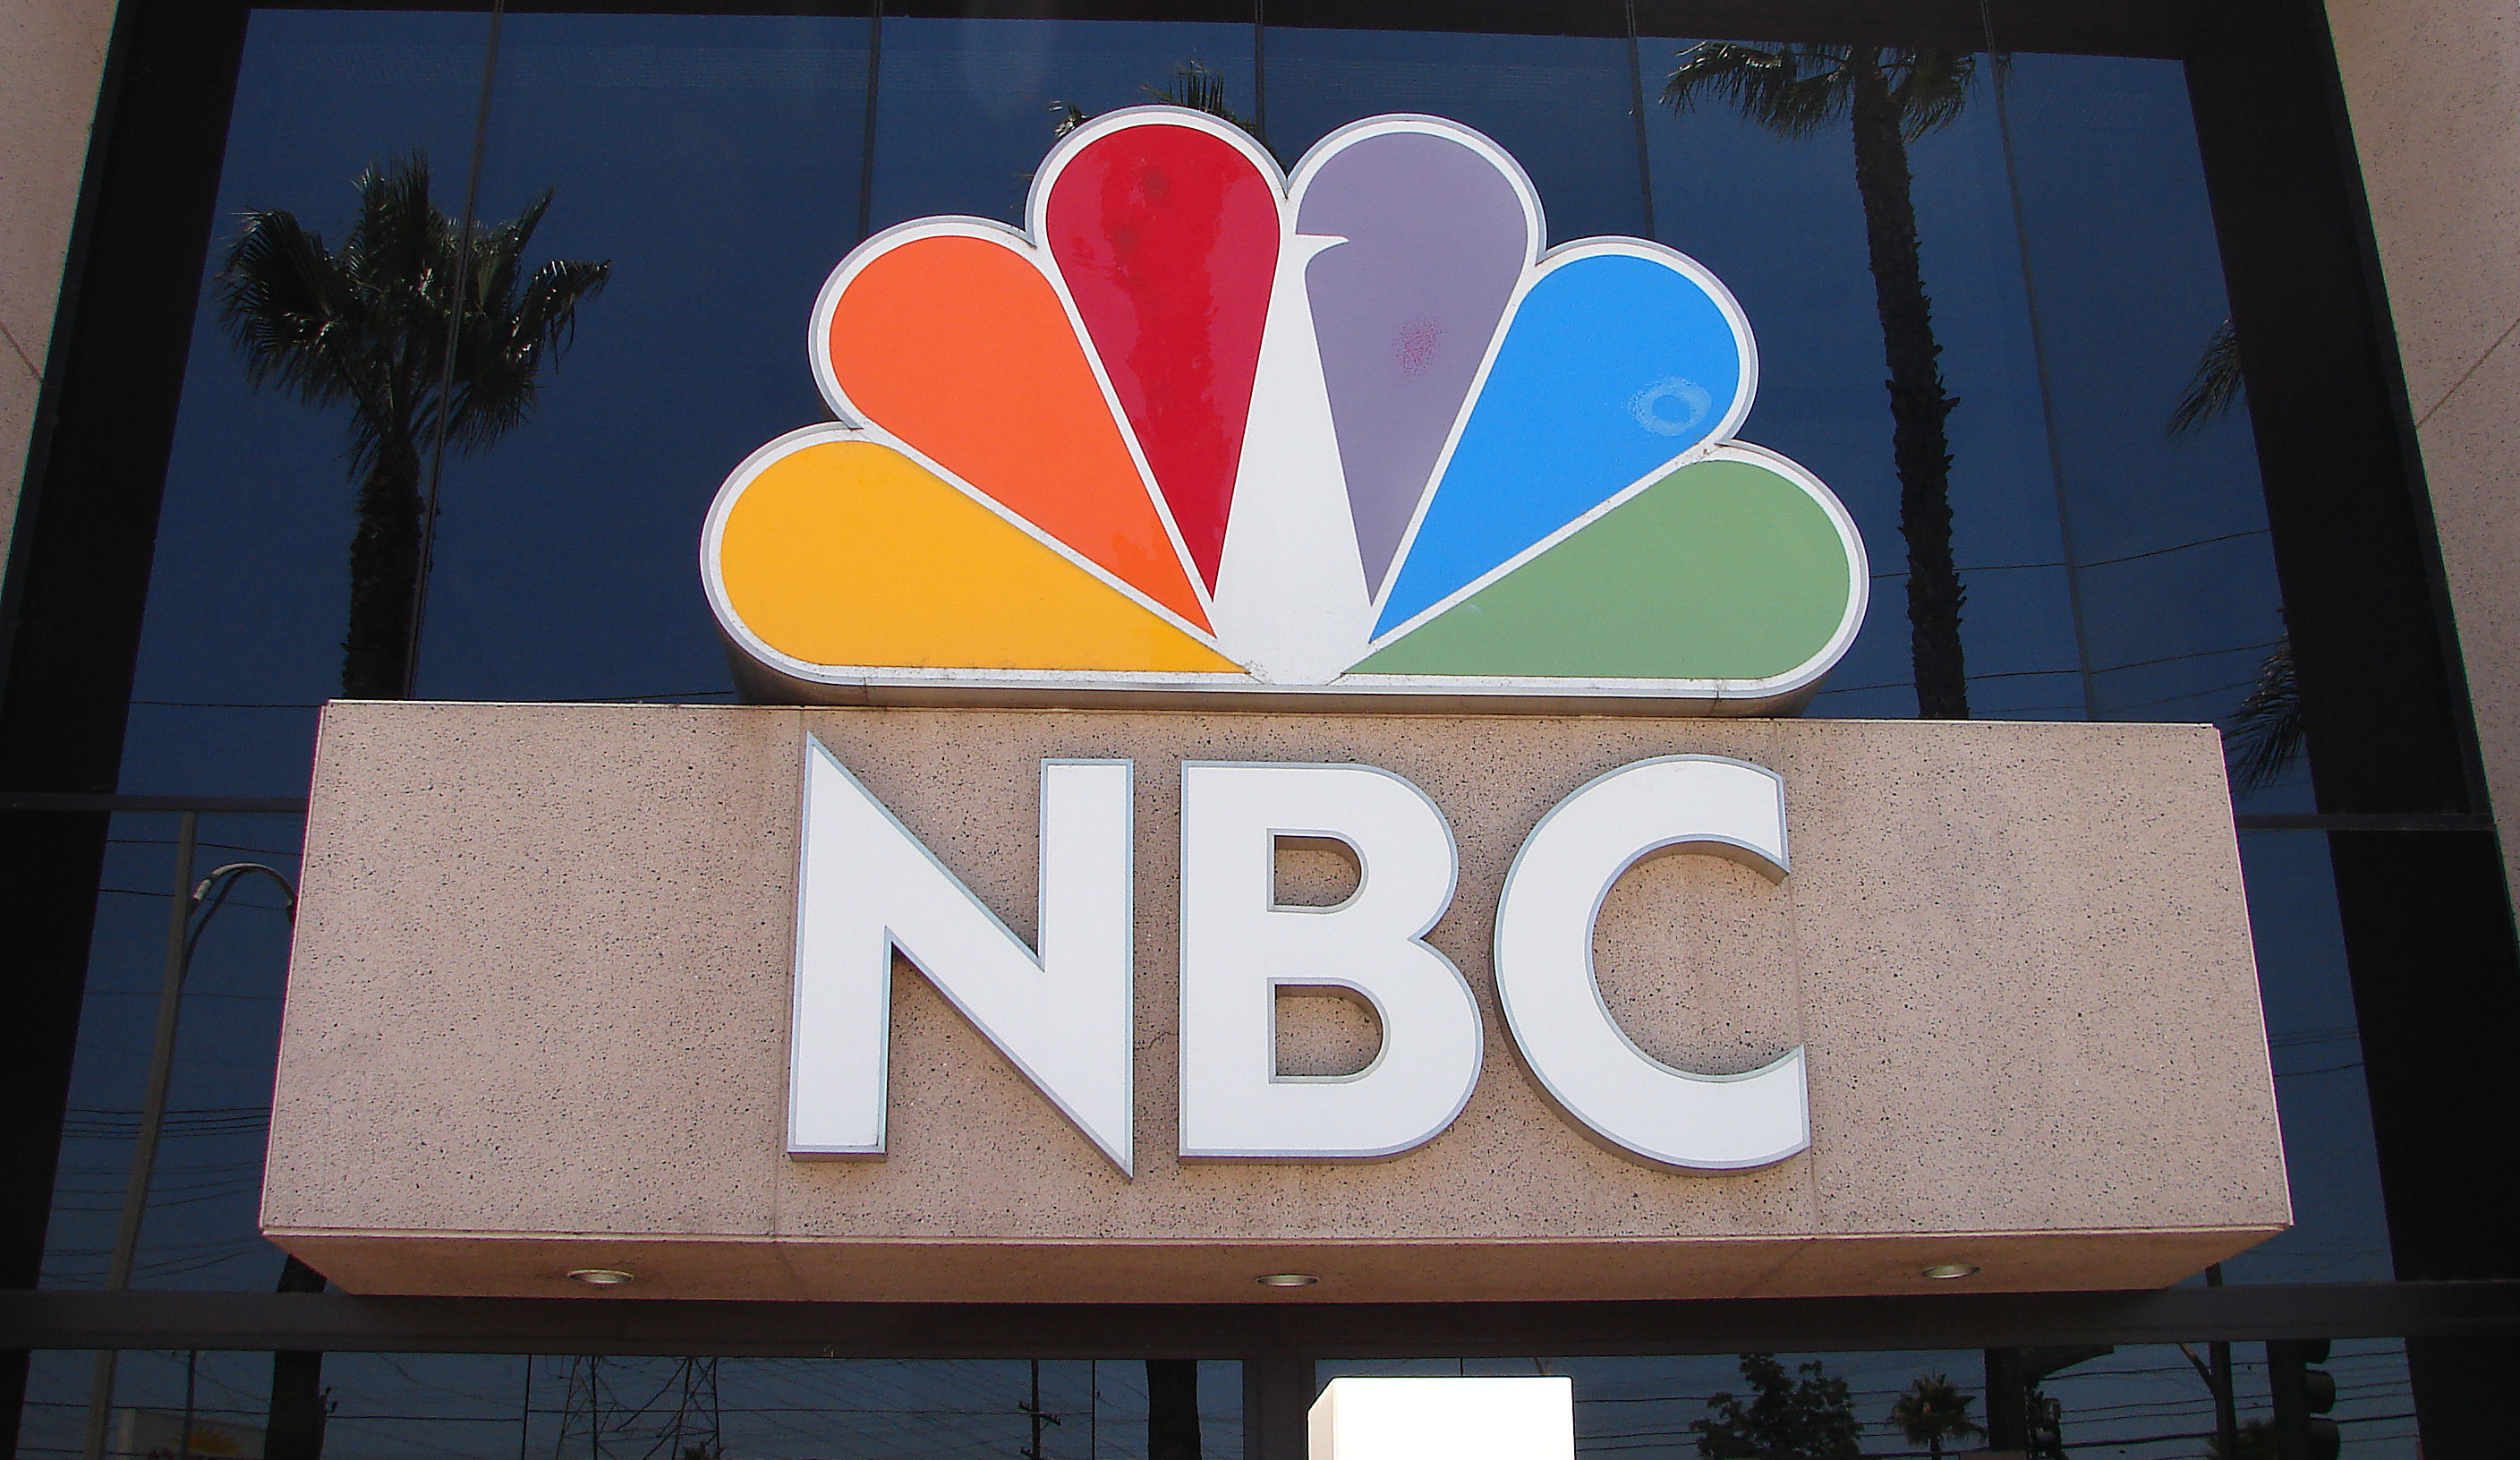 NBC Peacock sign on building